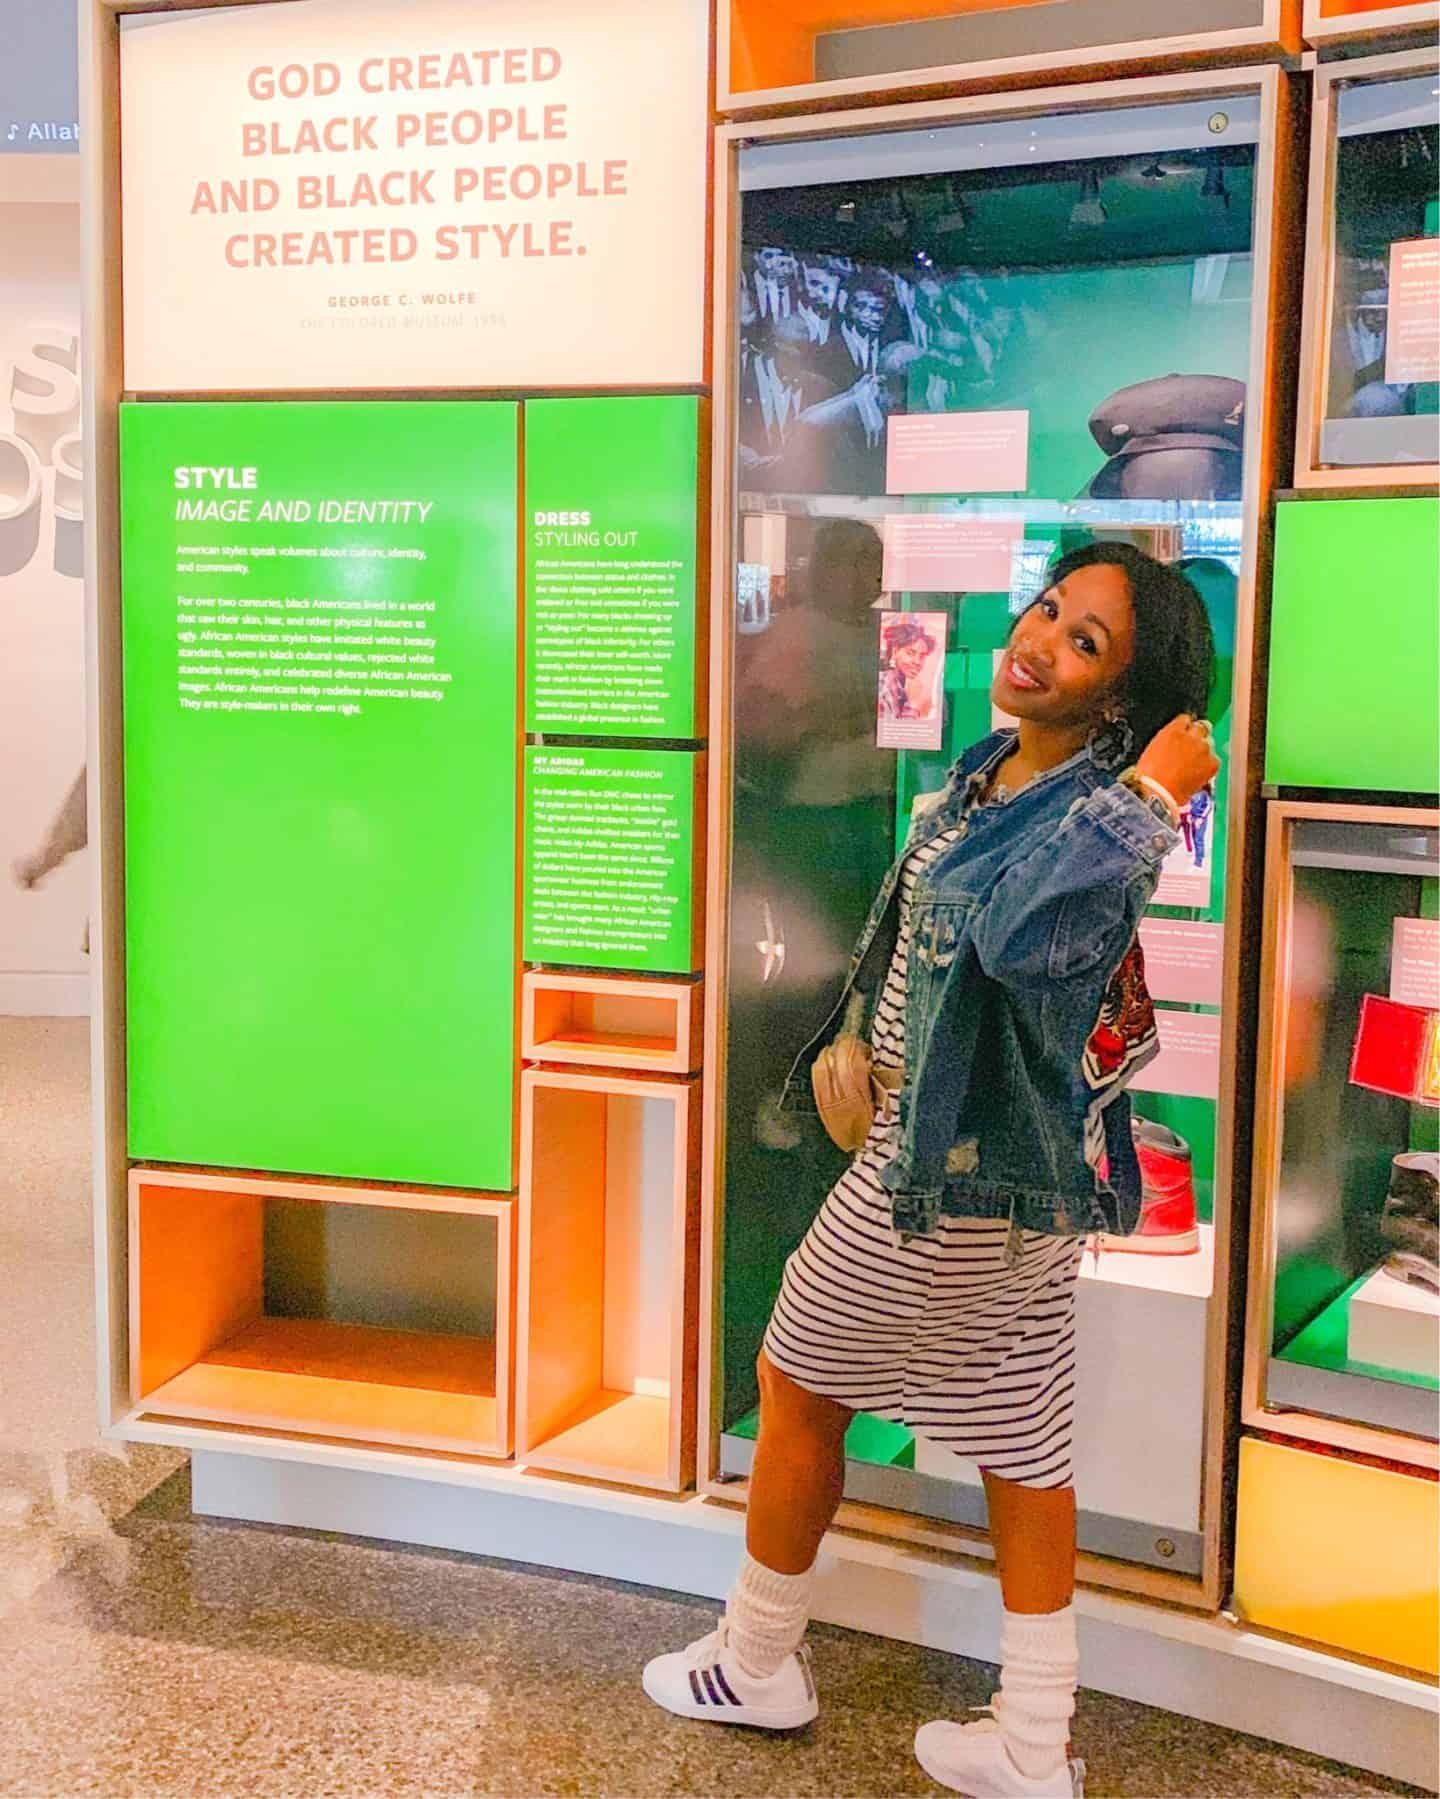 """Shaunda Necole- 5 Things We Learned From Watching Beyoncé's Netflix Documentary Homecoming- """"God Created Black People and Black People Created Style."""" -George C. Wolfe"""